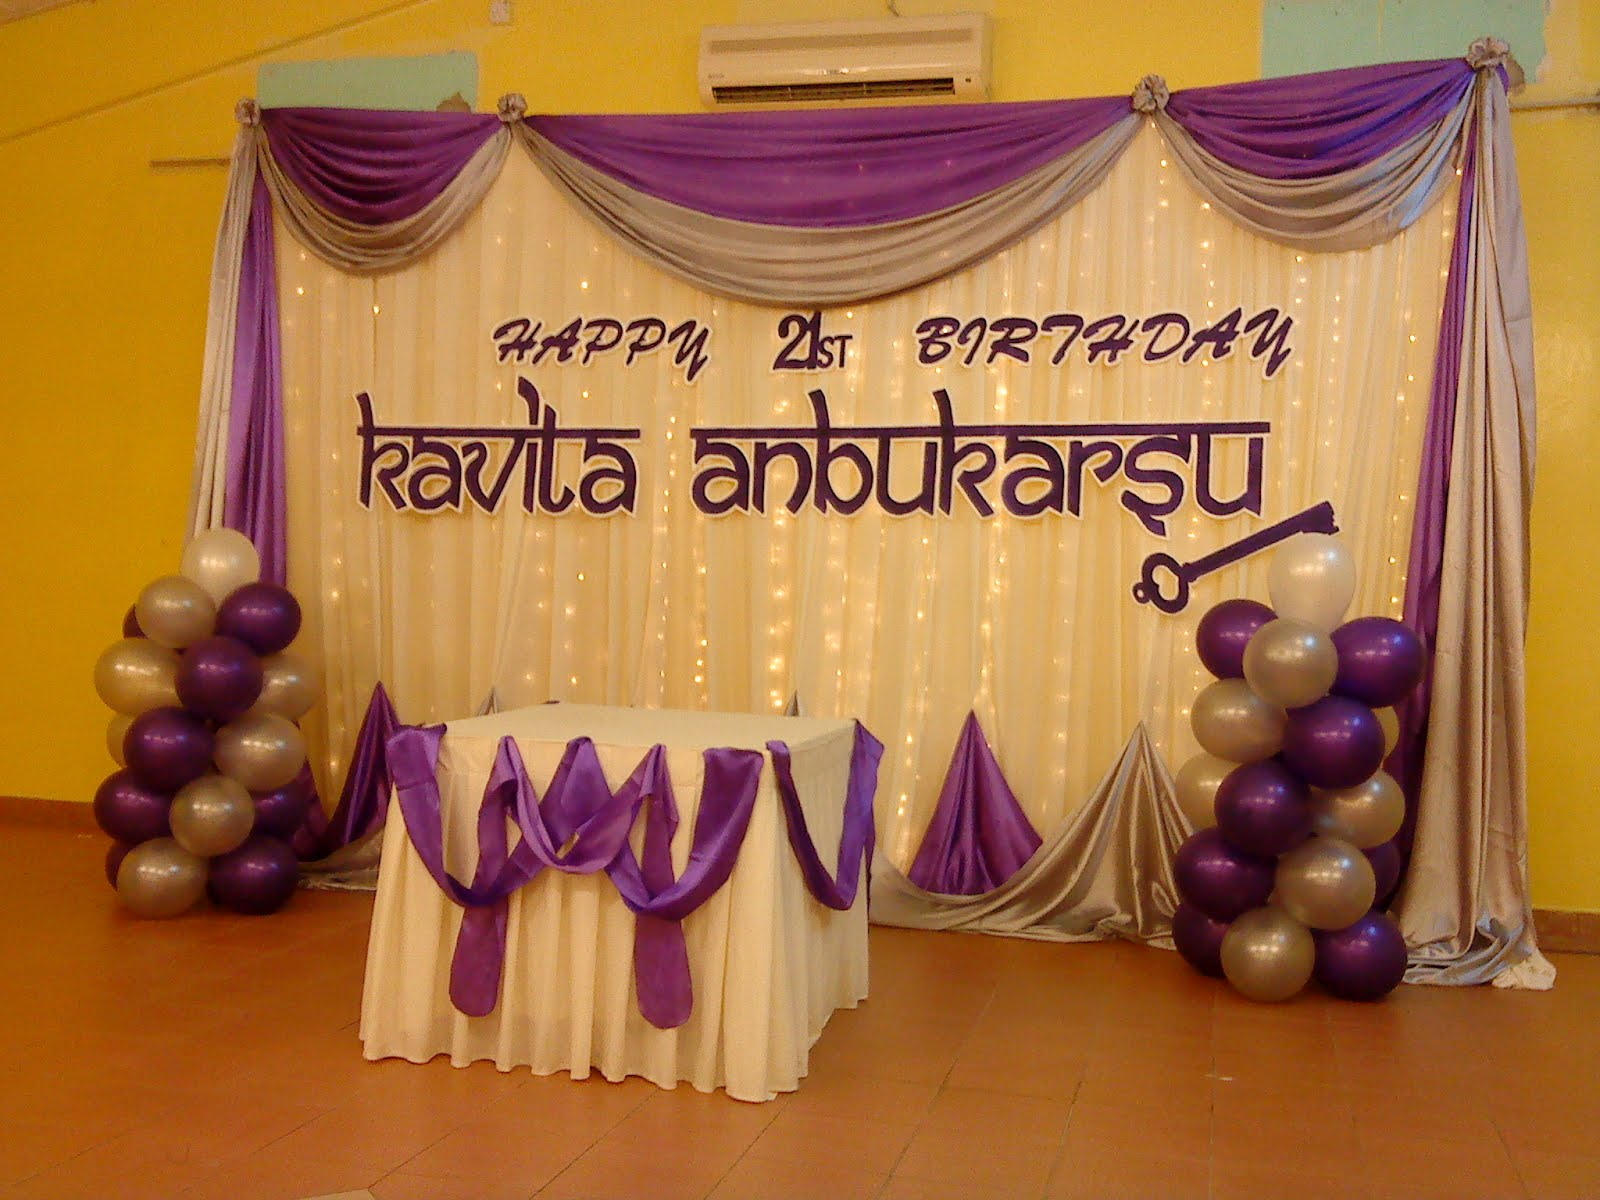 Raags management services 21st birthday deco purple white for 21st birthday decoration